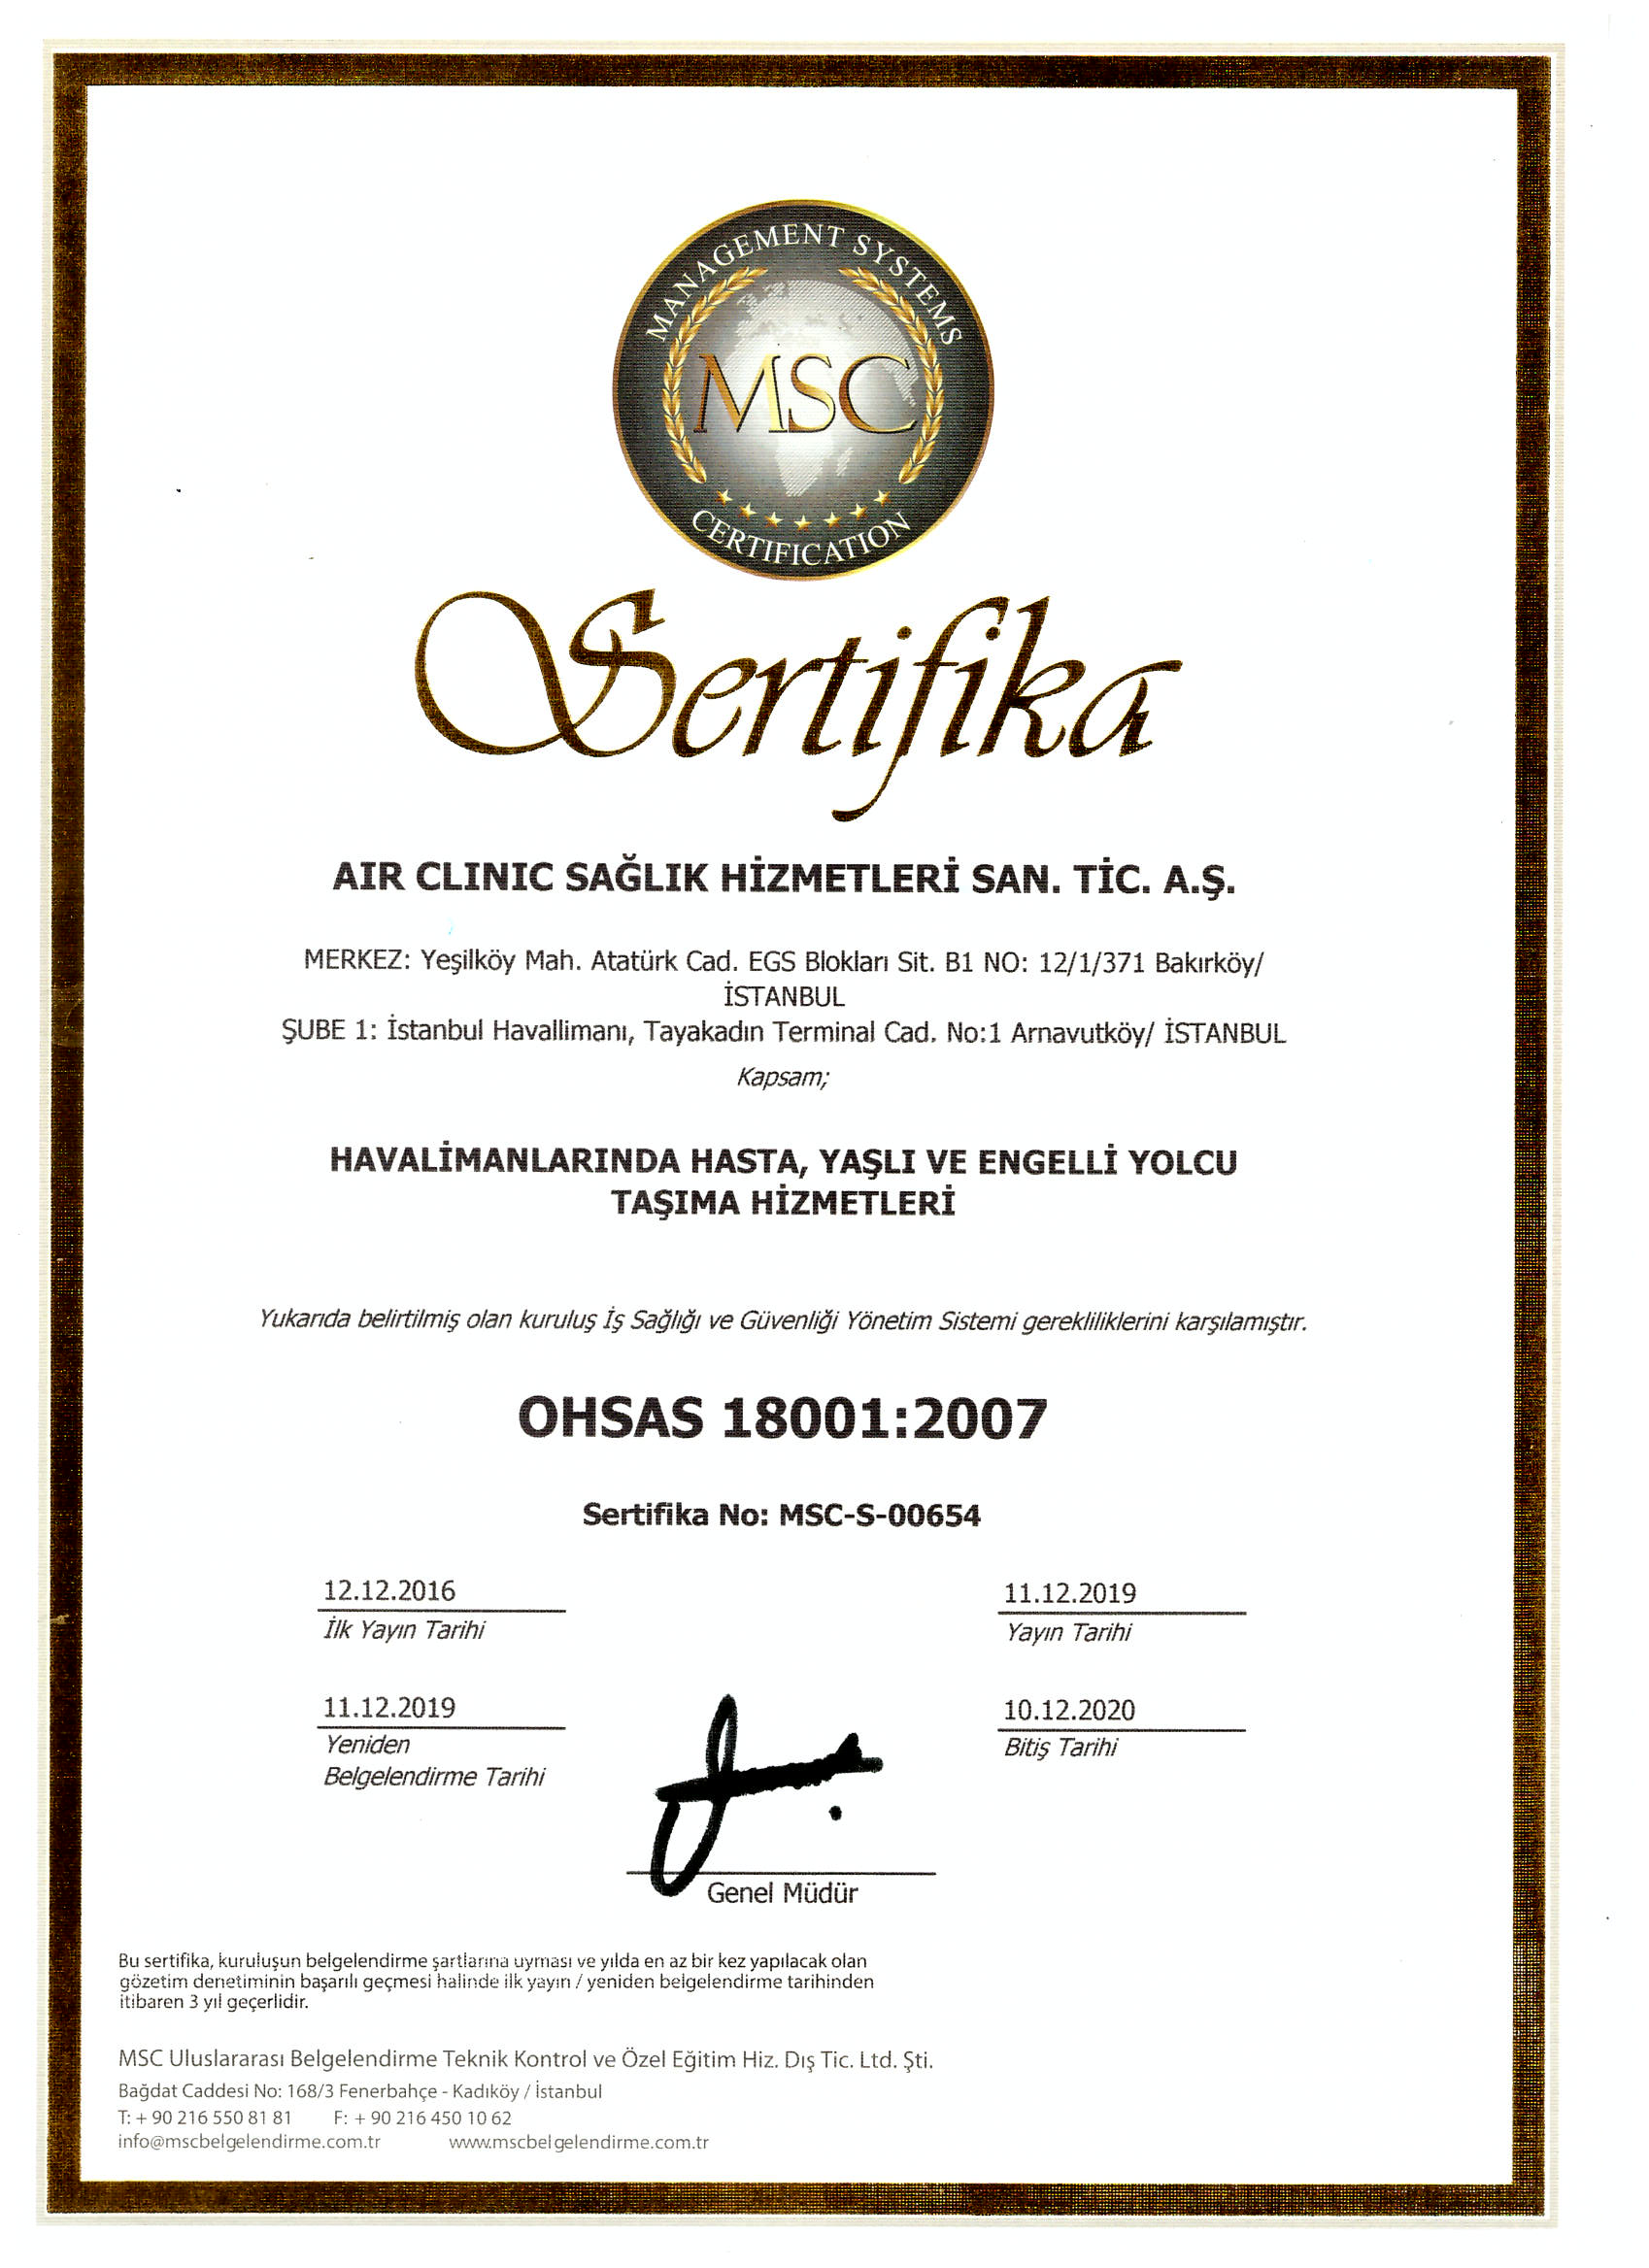 air-clinic-ohsas-180012007 Certificates